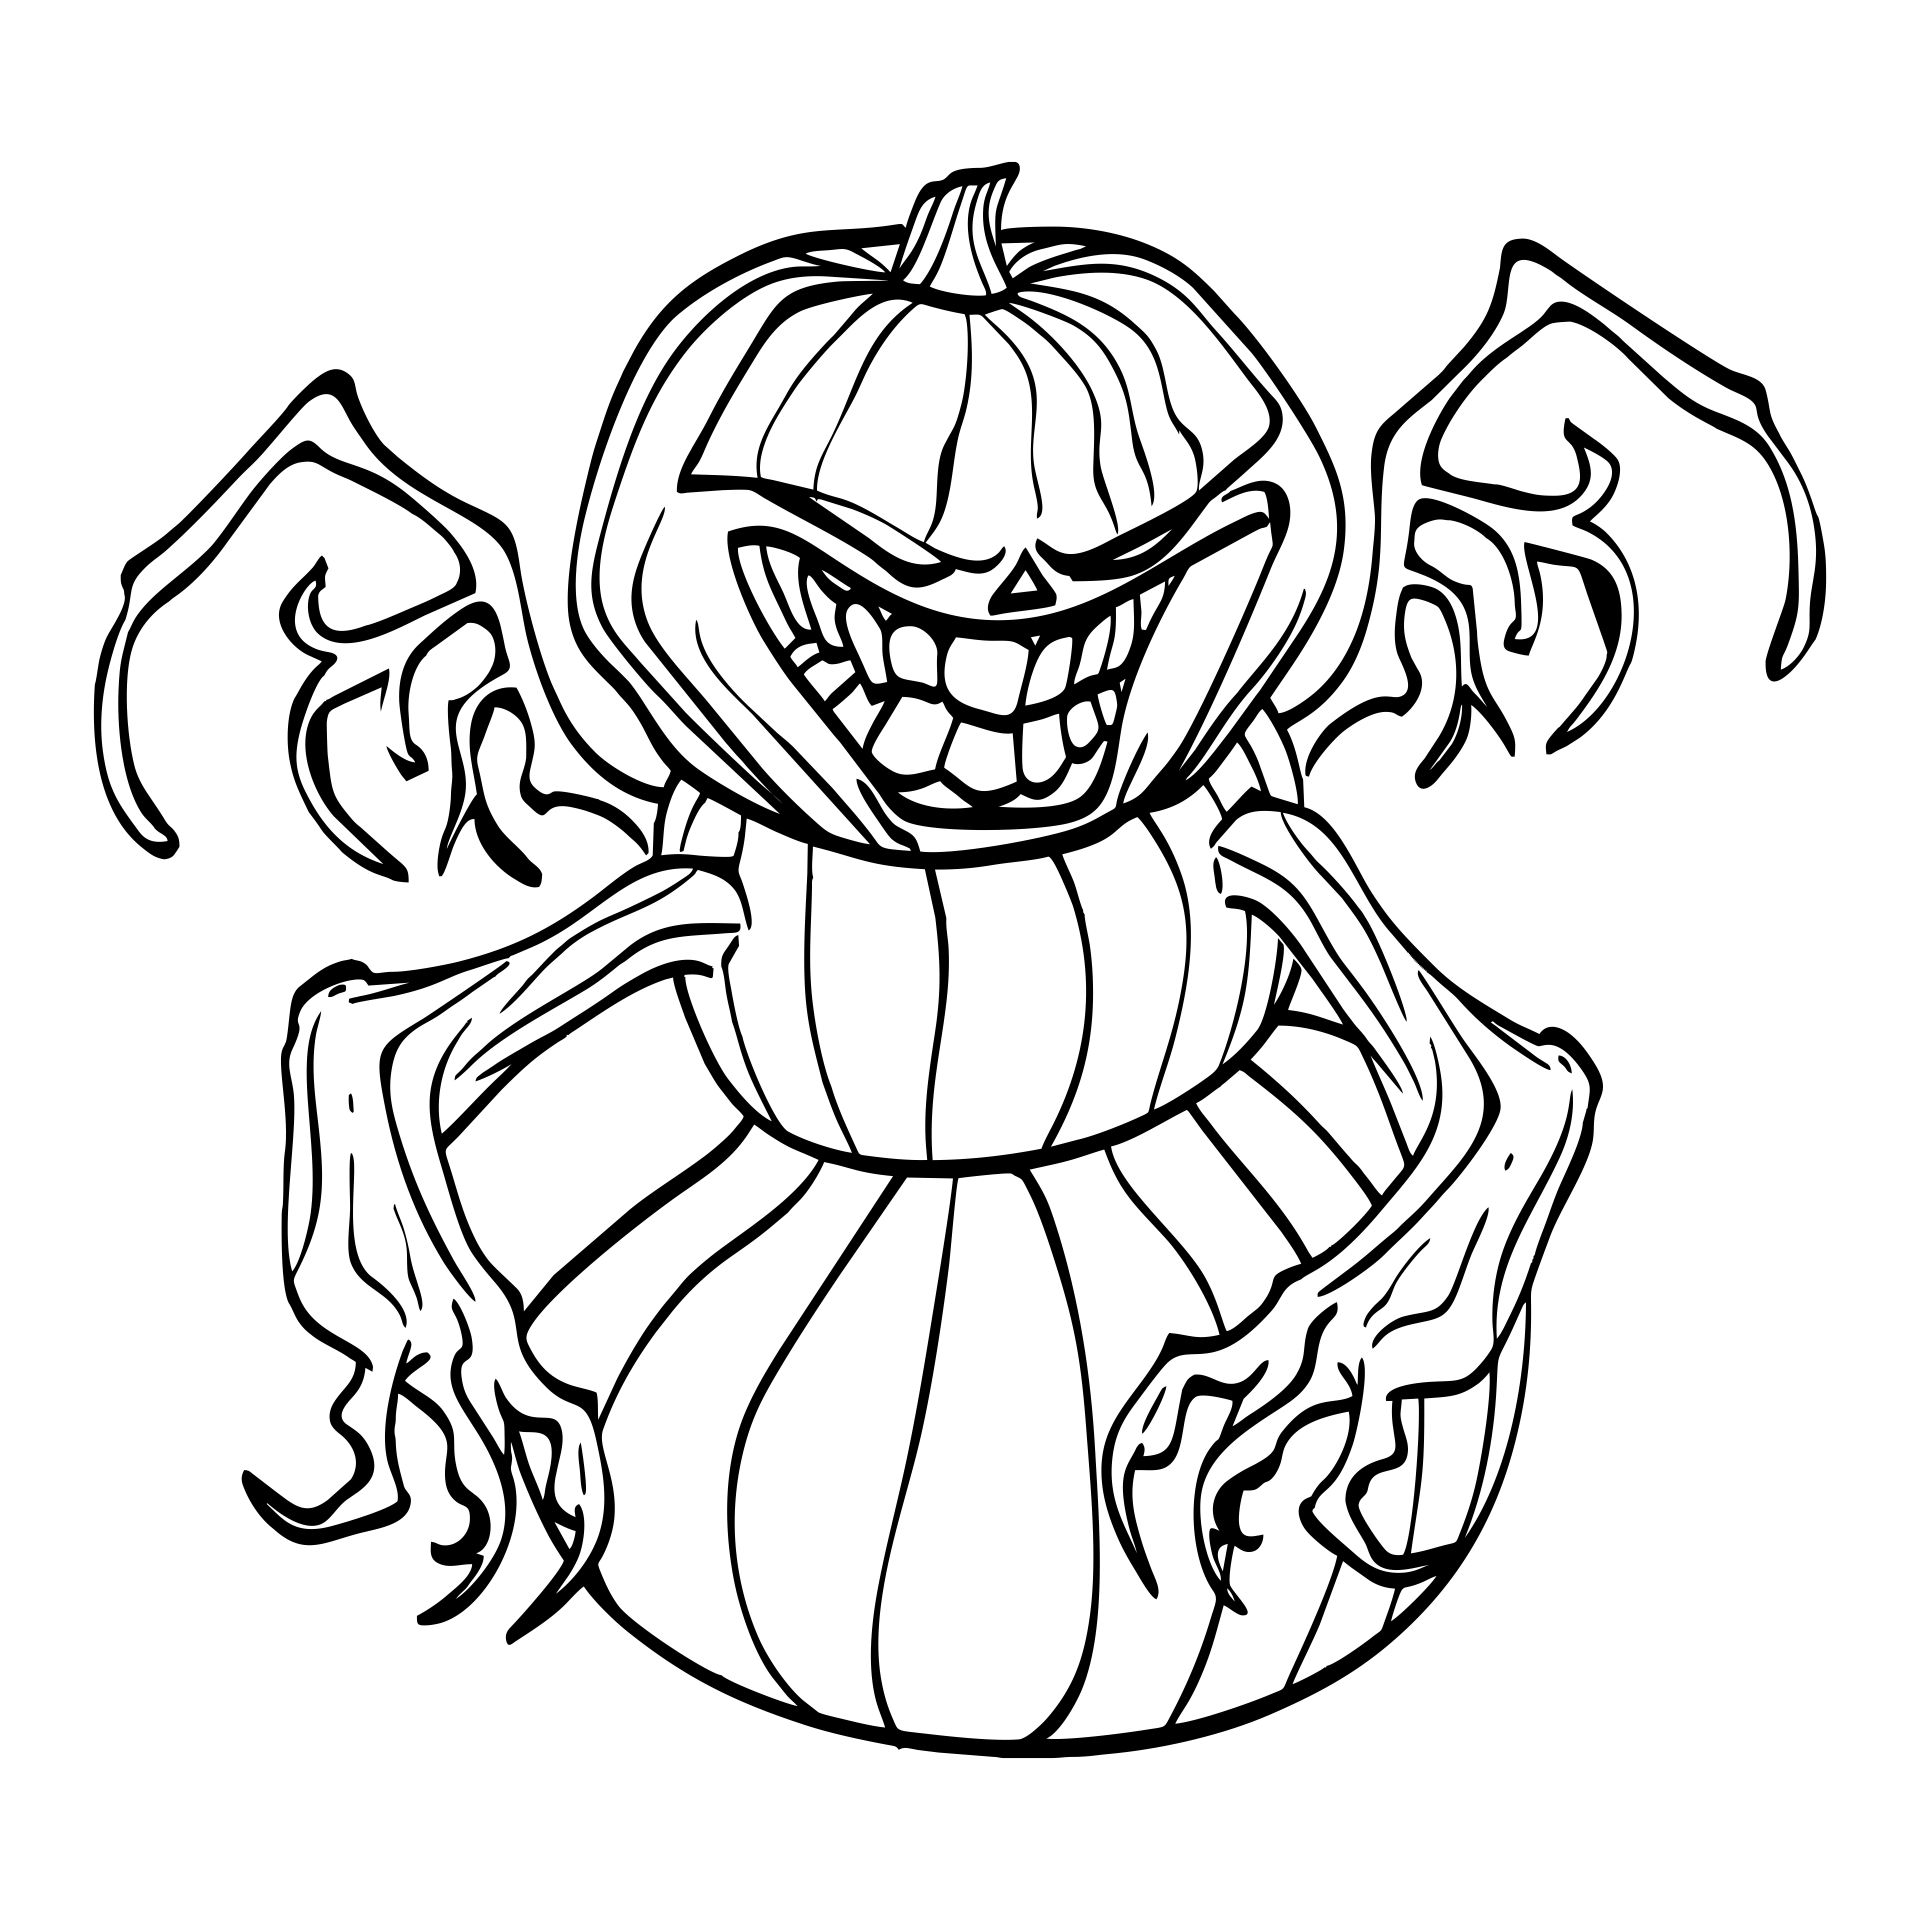 Scary Halloween Coloring Pages For Adults Printables